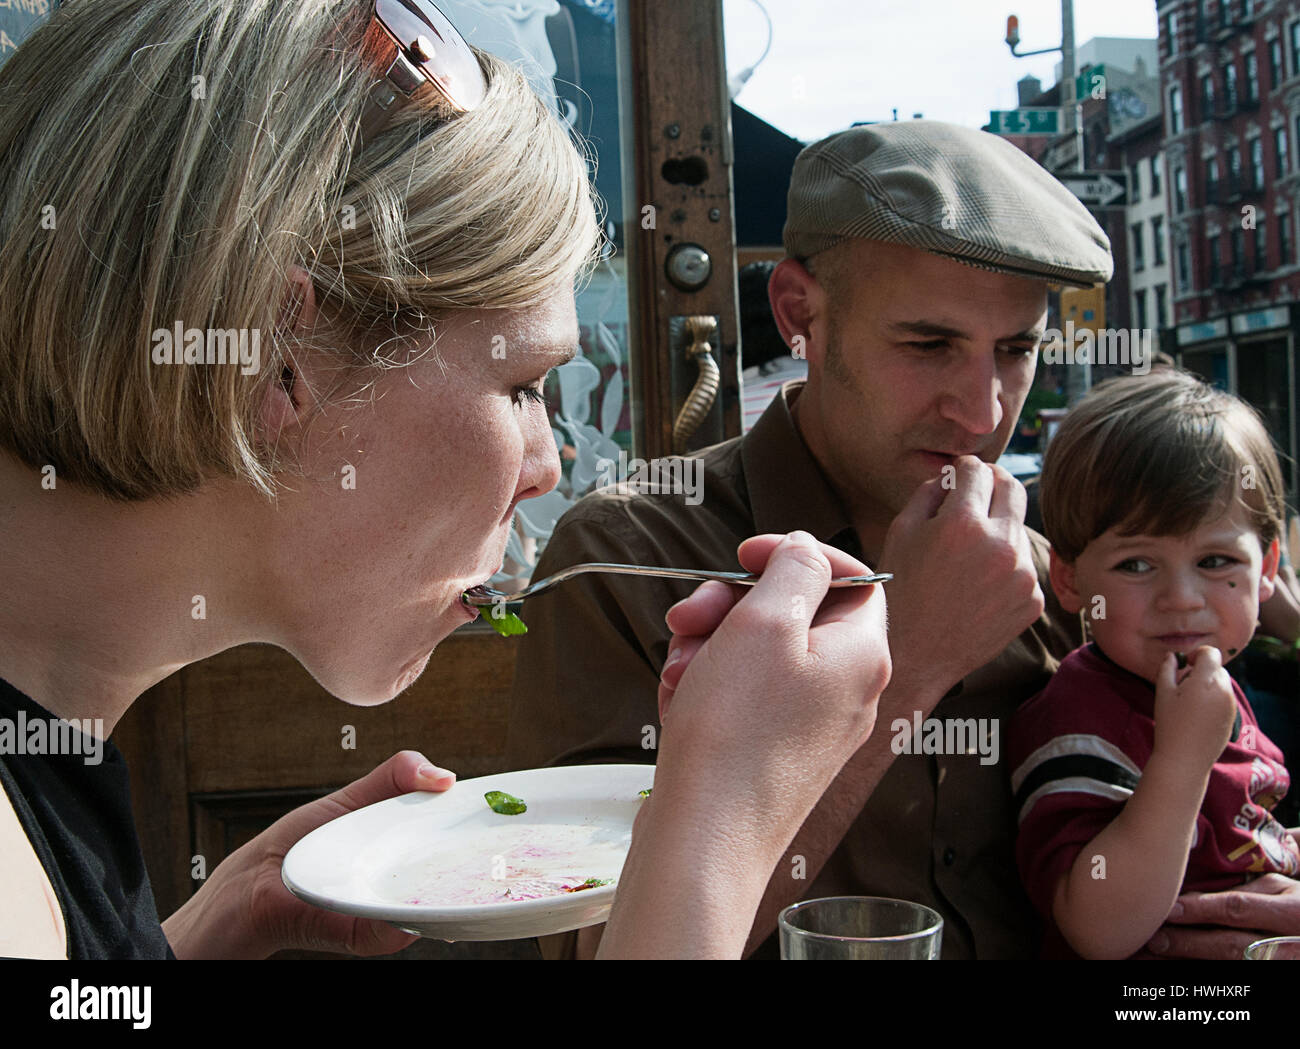 A family dining out in the East Village of Manhattan, New York City. - Stock Image